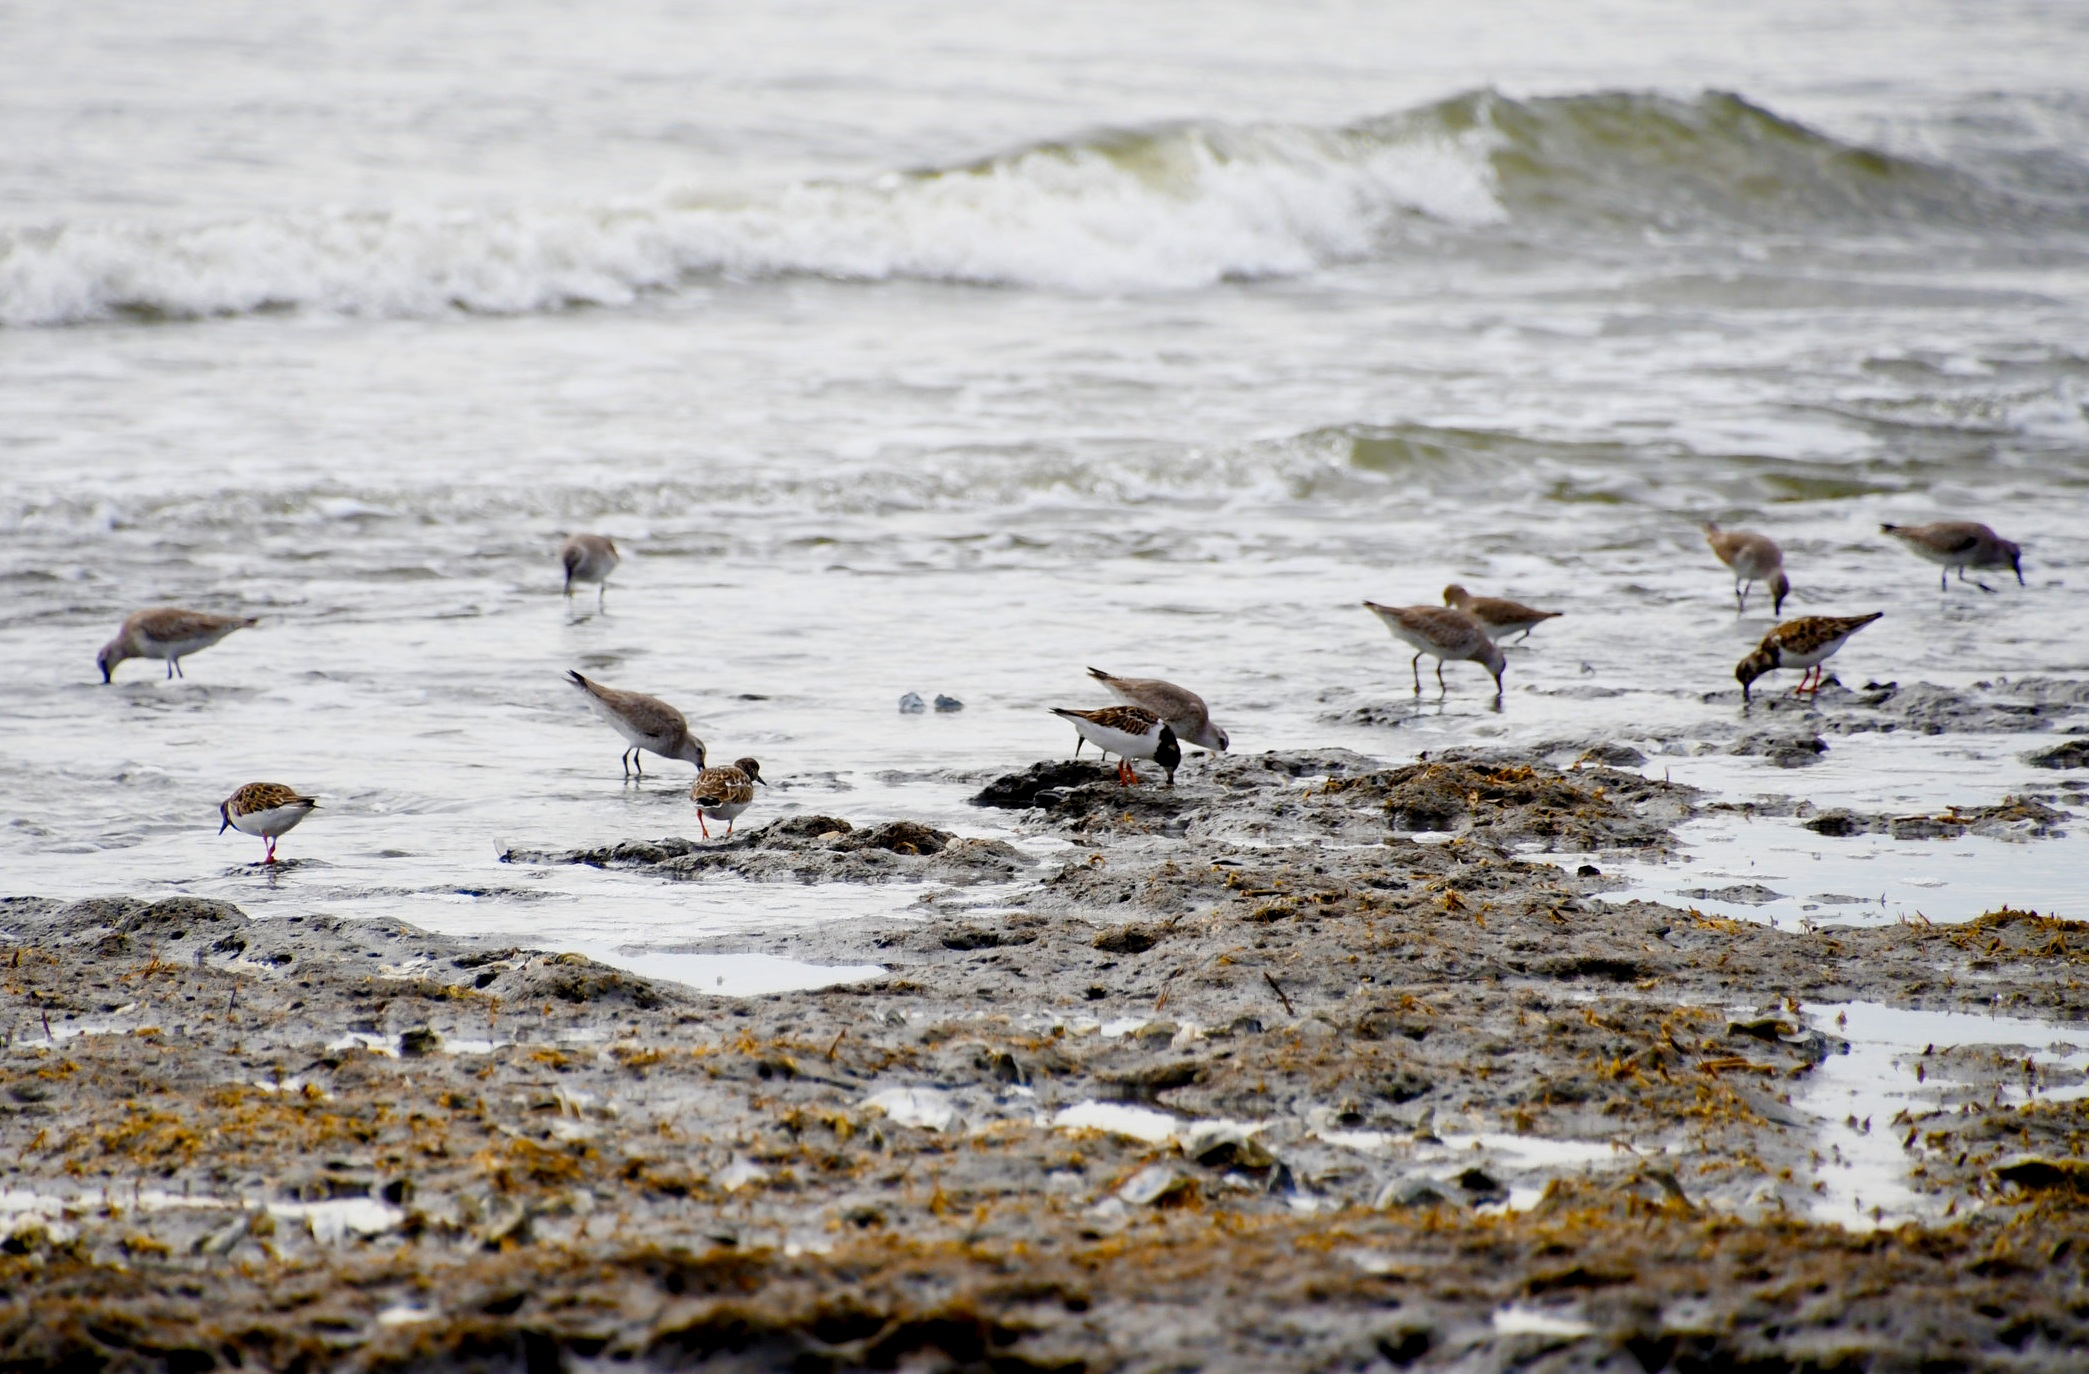 Shorebirds can be seen along the breaks in waves foraging for food at the SCDNR-managed Botany Bay Heritage Preserve. (SCDNR photo by Kaley Lawrimore)